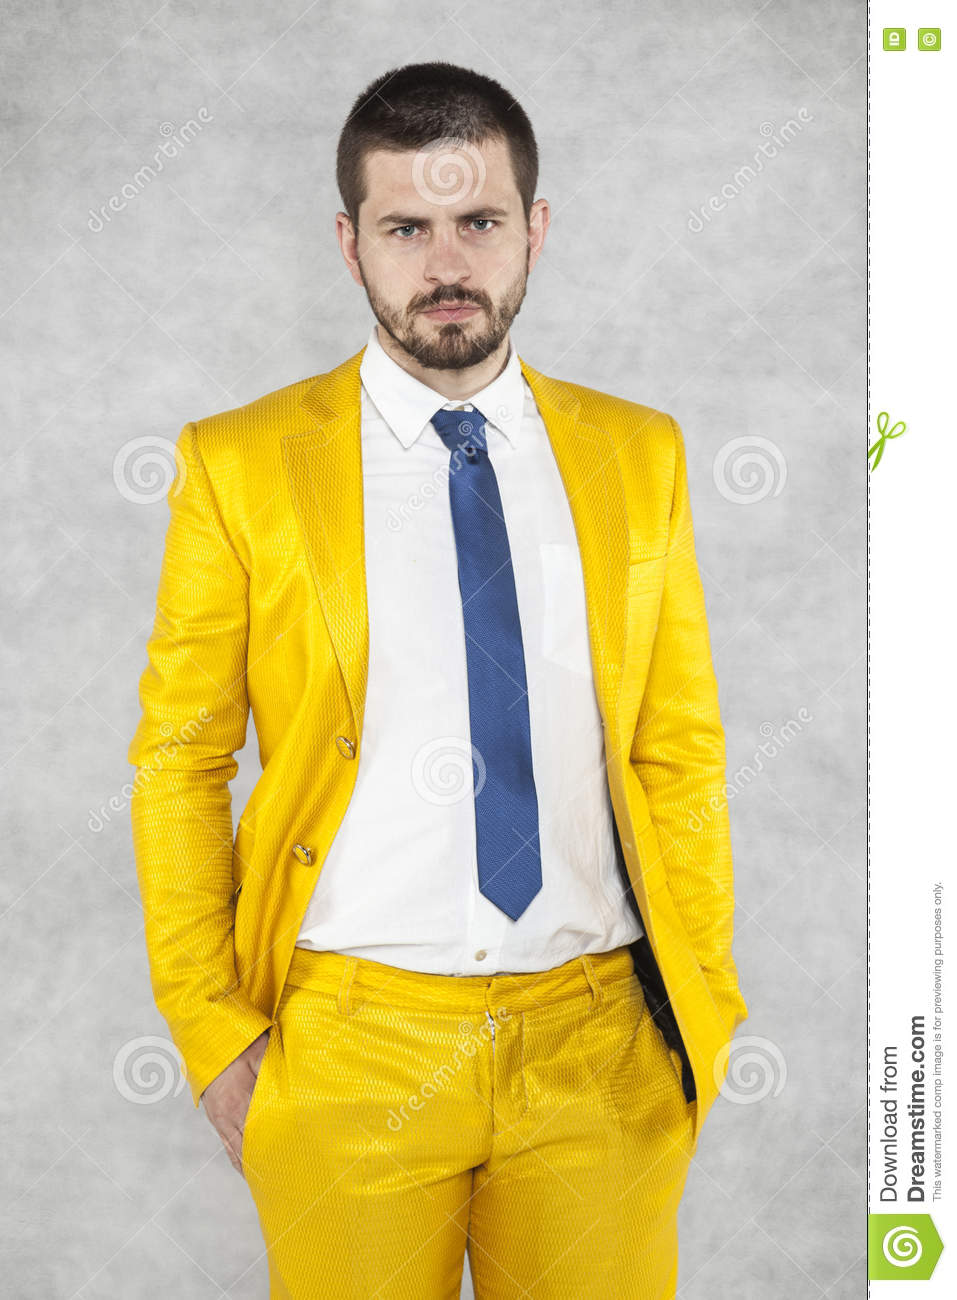 Businessman in a gold suit is very confident